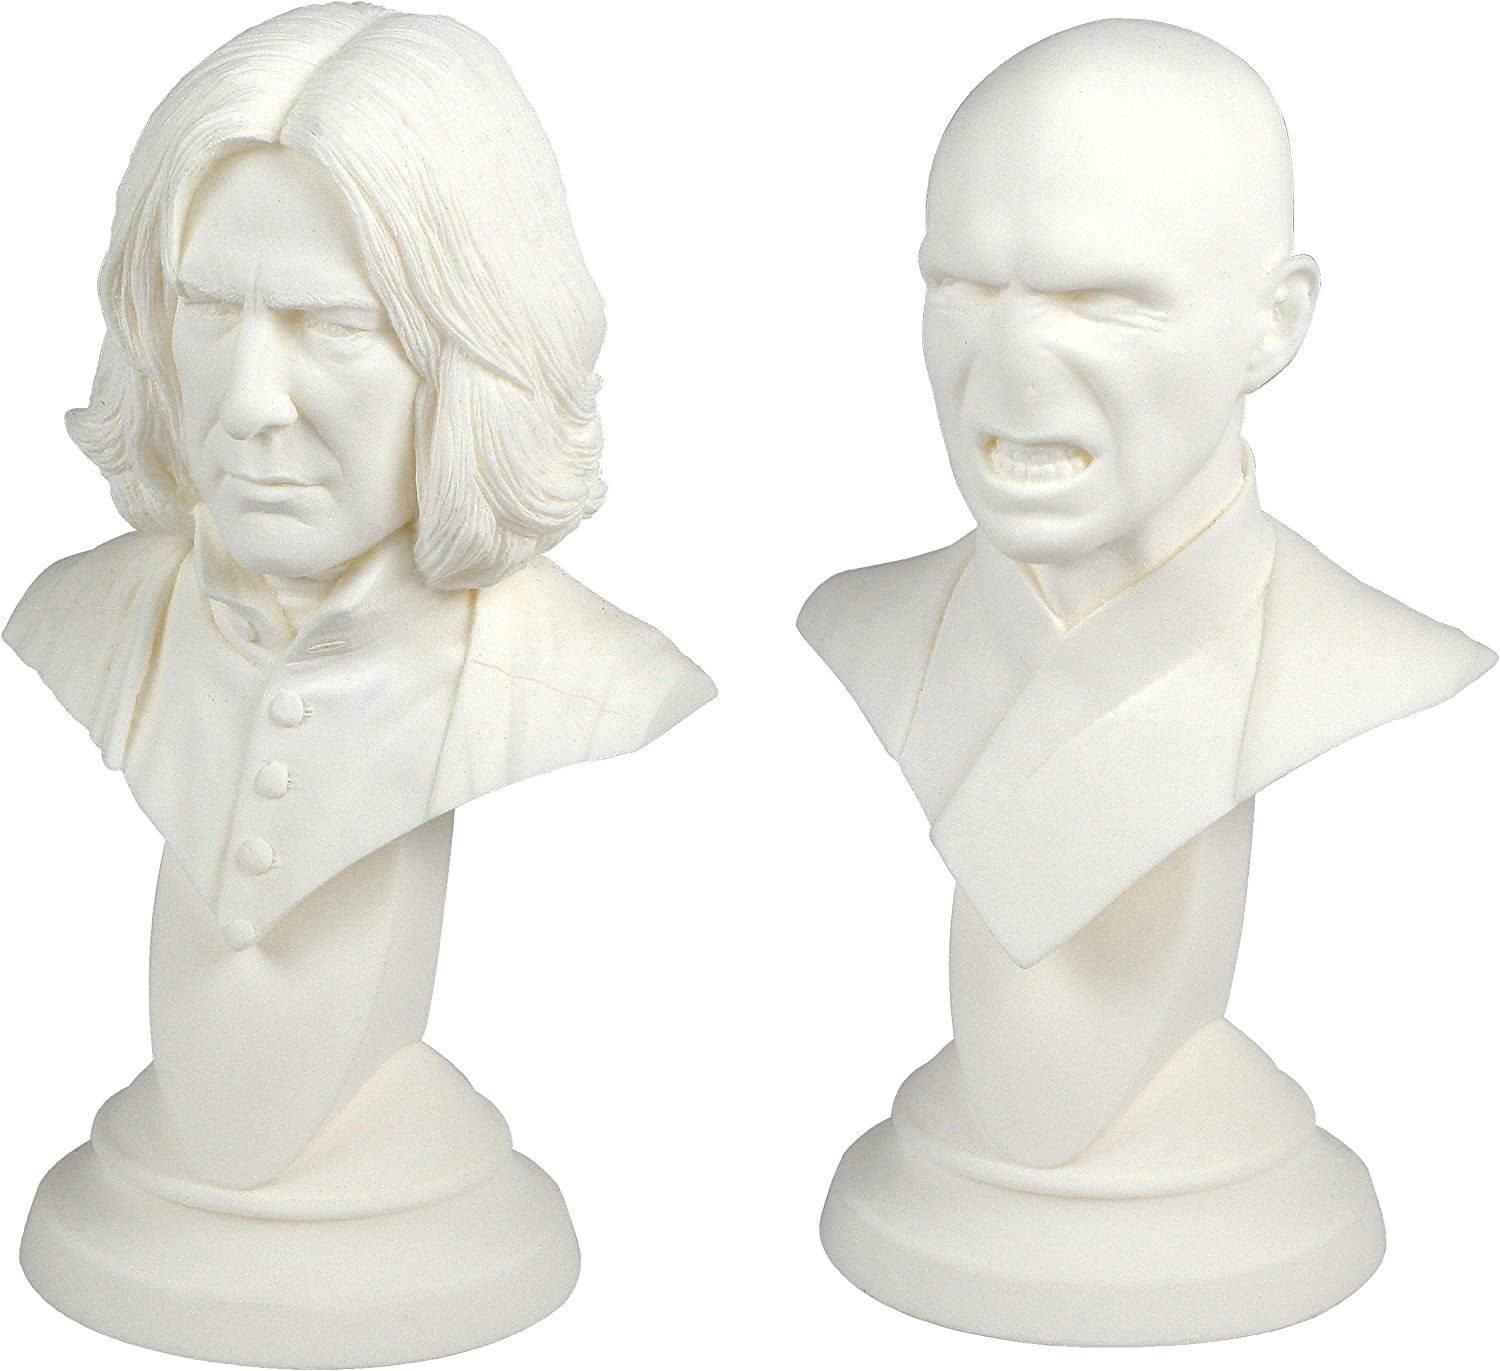 Harry Potter Character Casting Kit Super New arrival intense SALE - Severus Lord Voldemort and